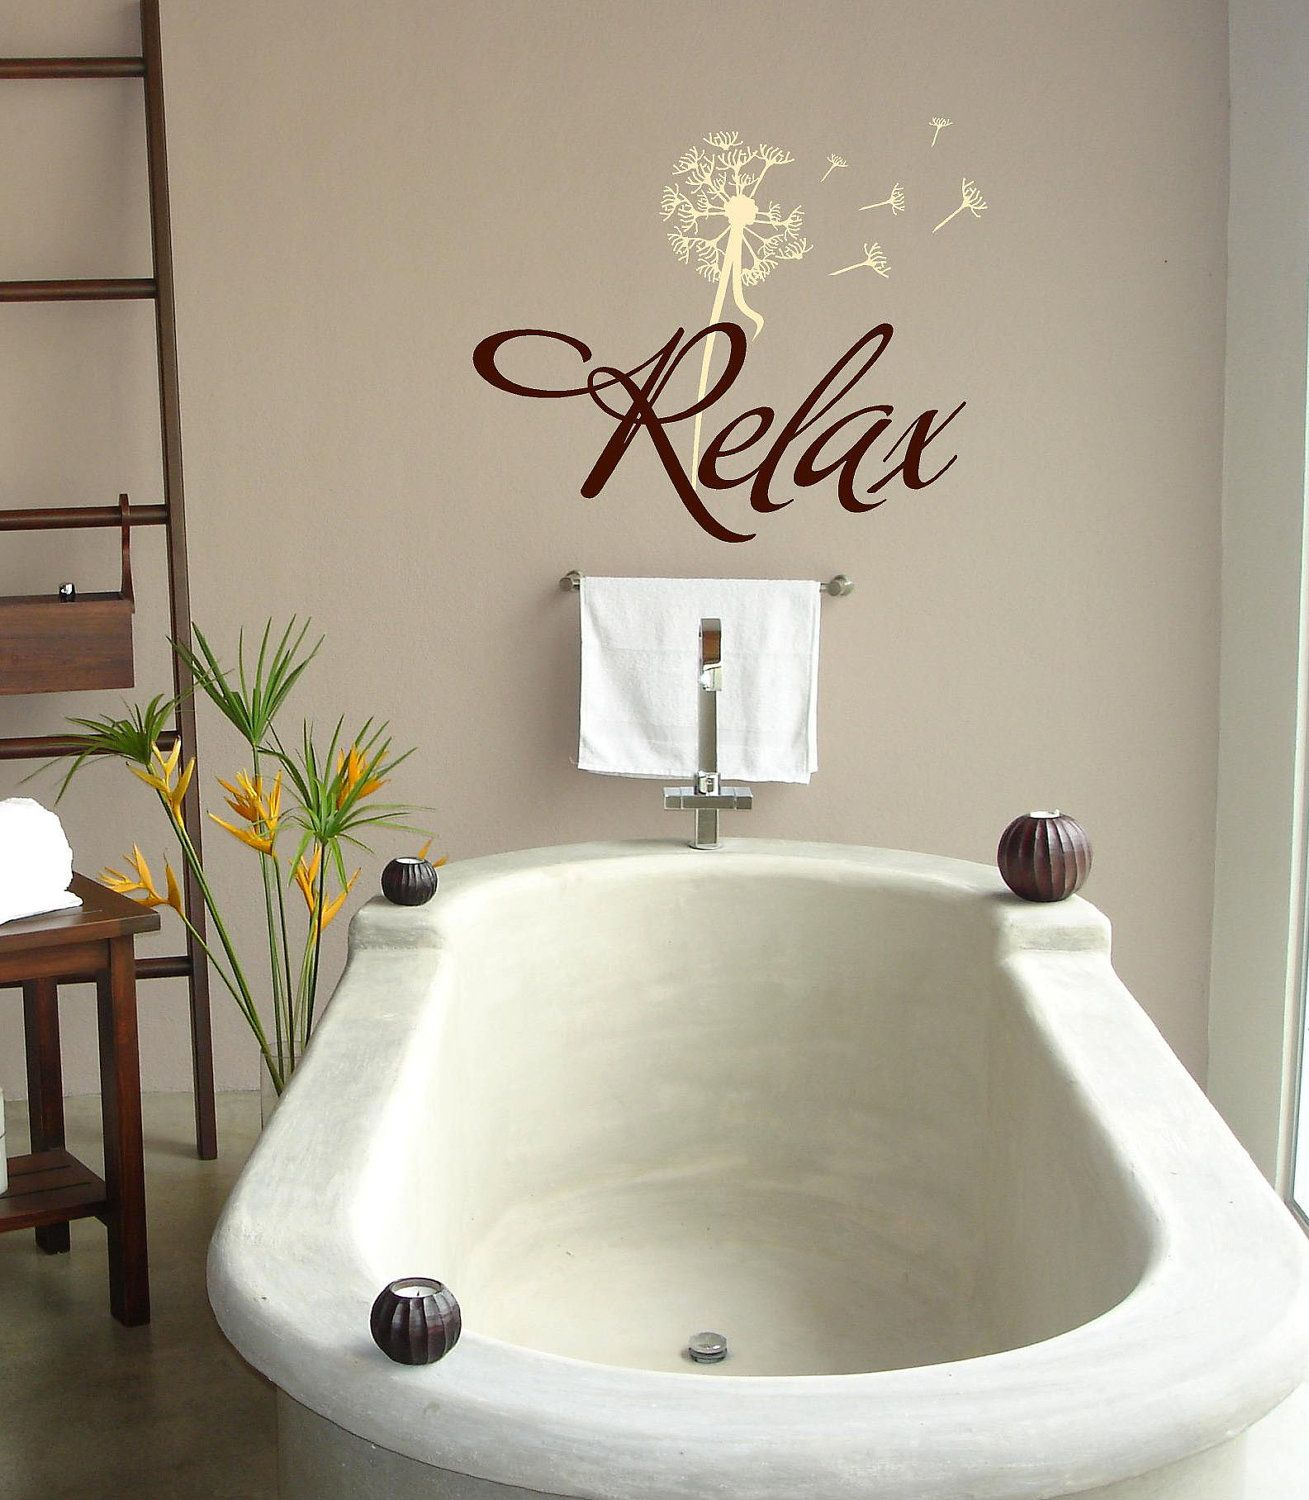 Relax with dandelion bathroom vinyl lettering wall words graphics home decor itswritteninvinyl also rh pinterest